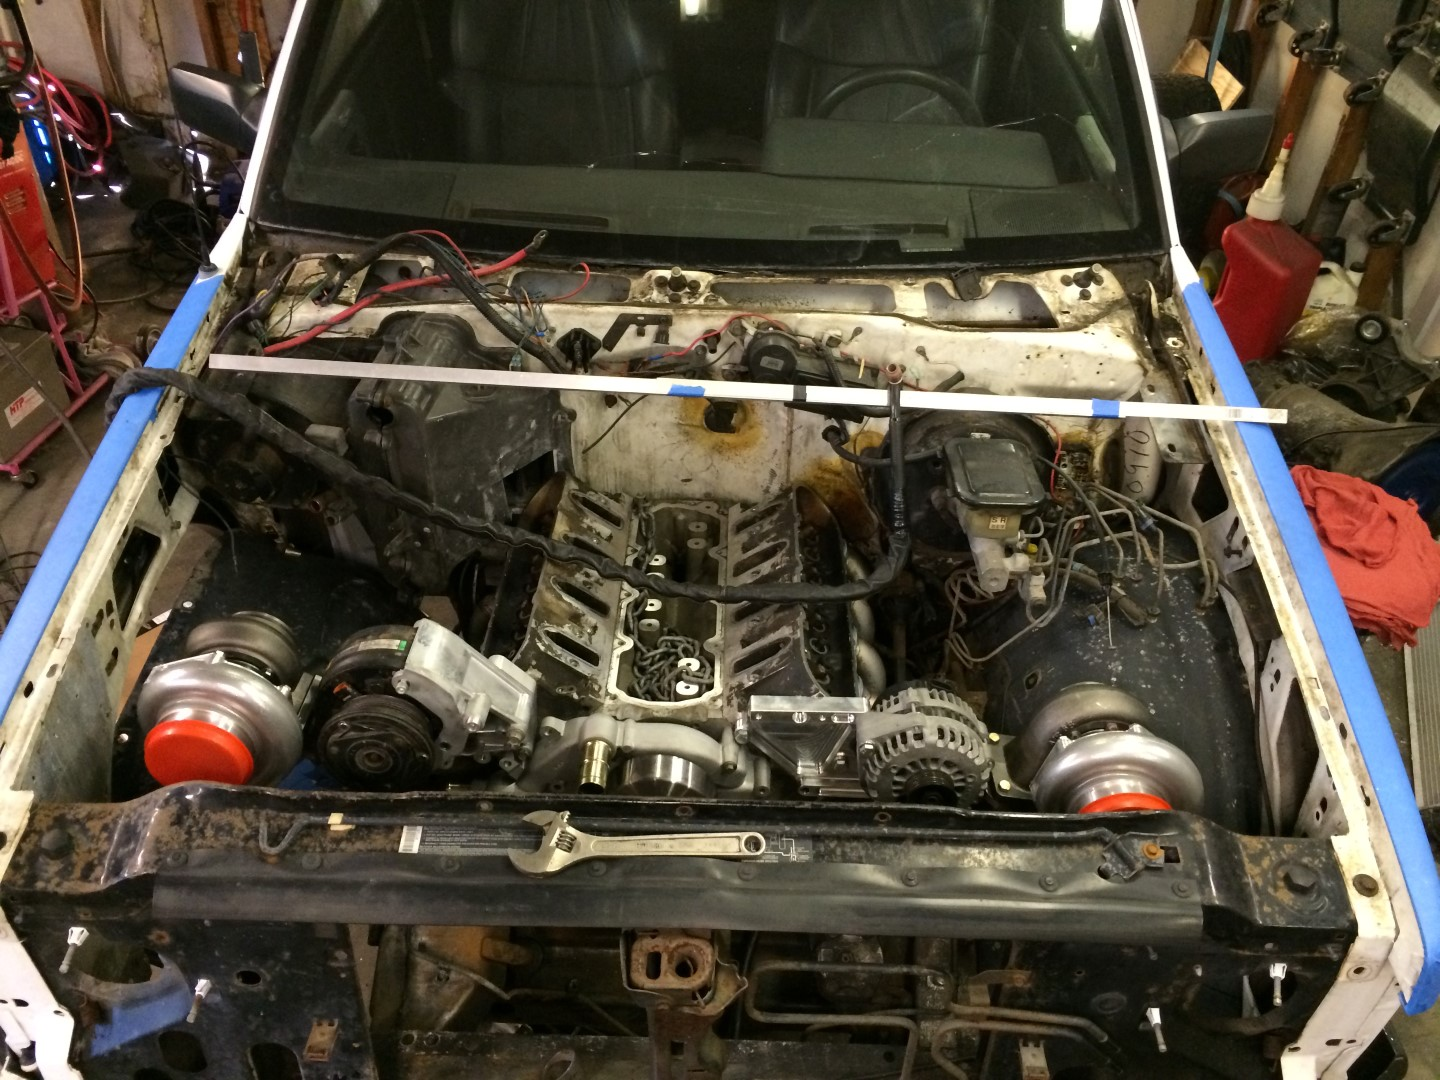 post up picts.of turbo motor bays! - Page 28 - LS1TECH - Camaro and Firebird Forum Discussion